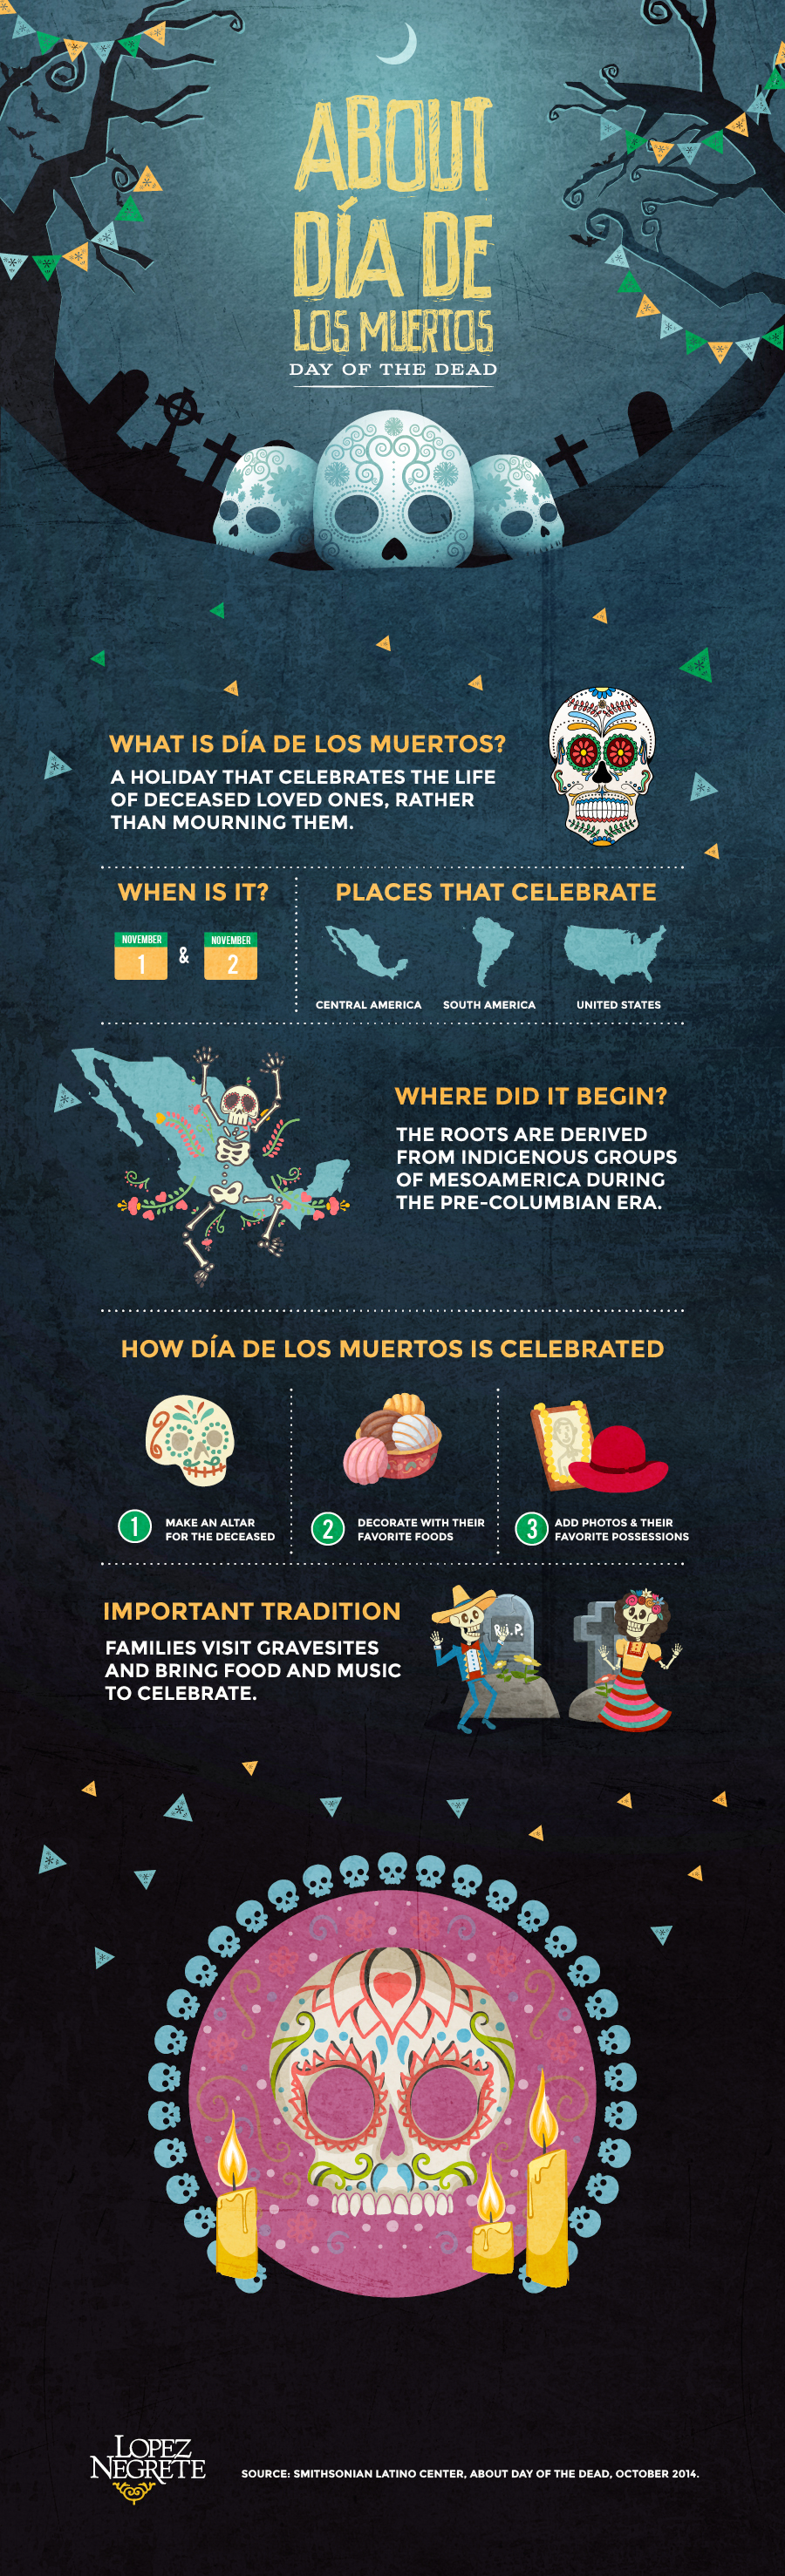 diadelosmuertos_infographic_12-final